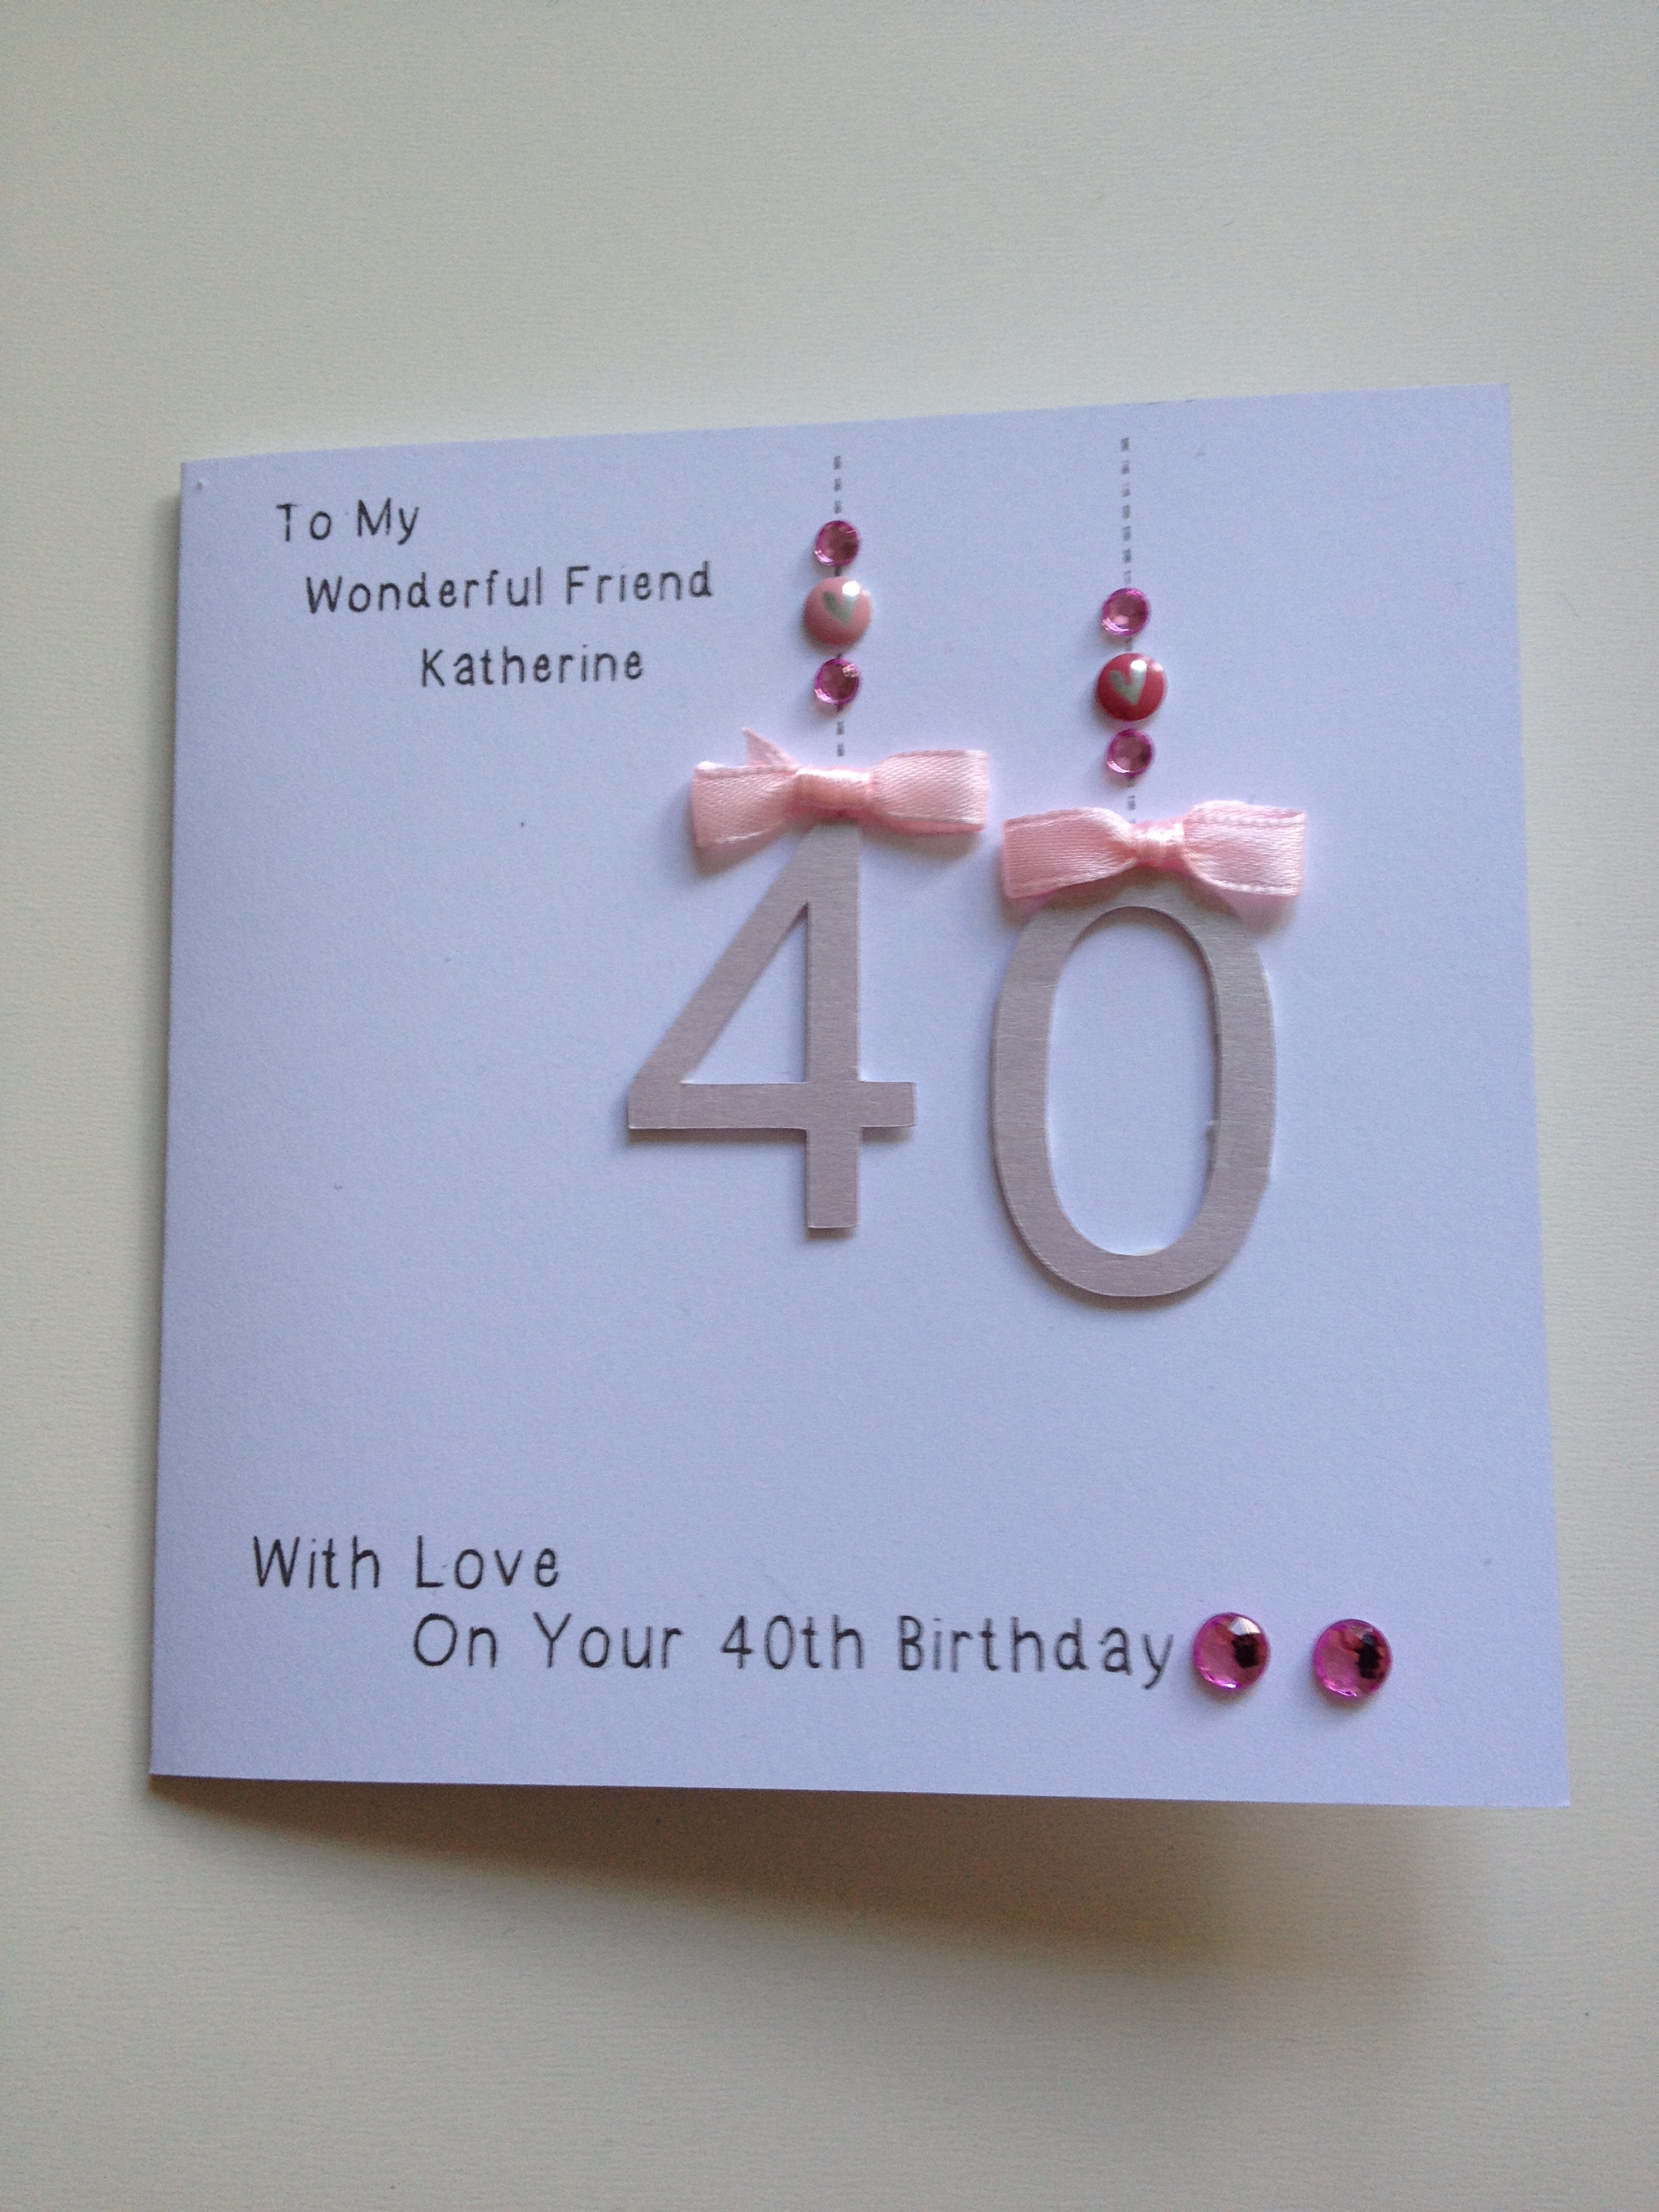 greeting card messages for 40th birthday ; e23c69bed4bb4b56118952ac49c91c04